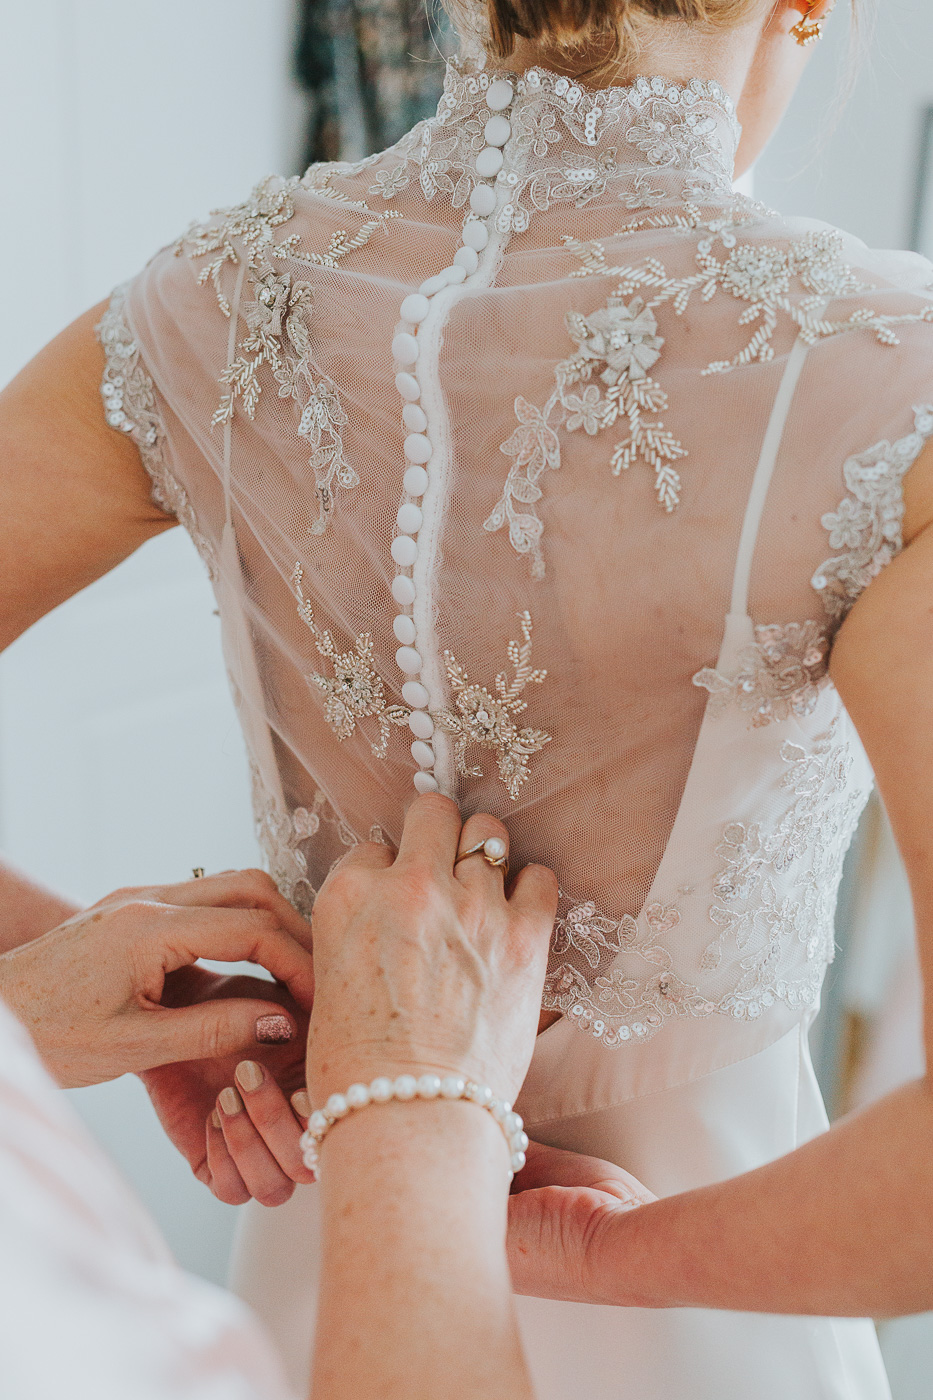 Delightful details - we loved the intricate lace back of Jaimie's wedding dress.jpg